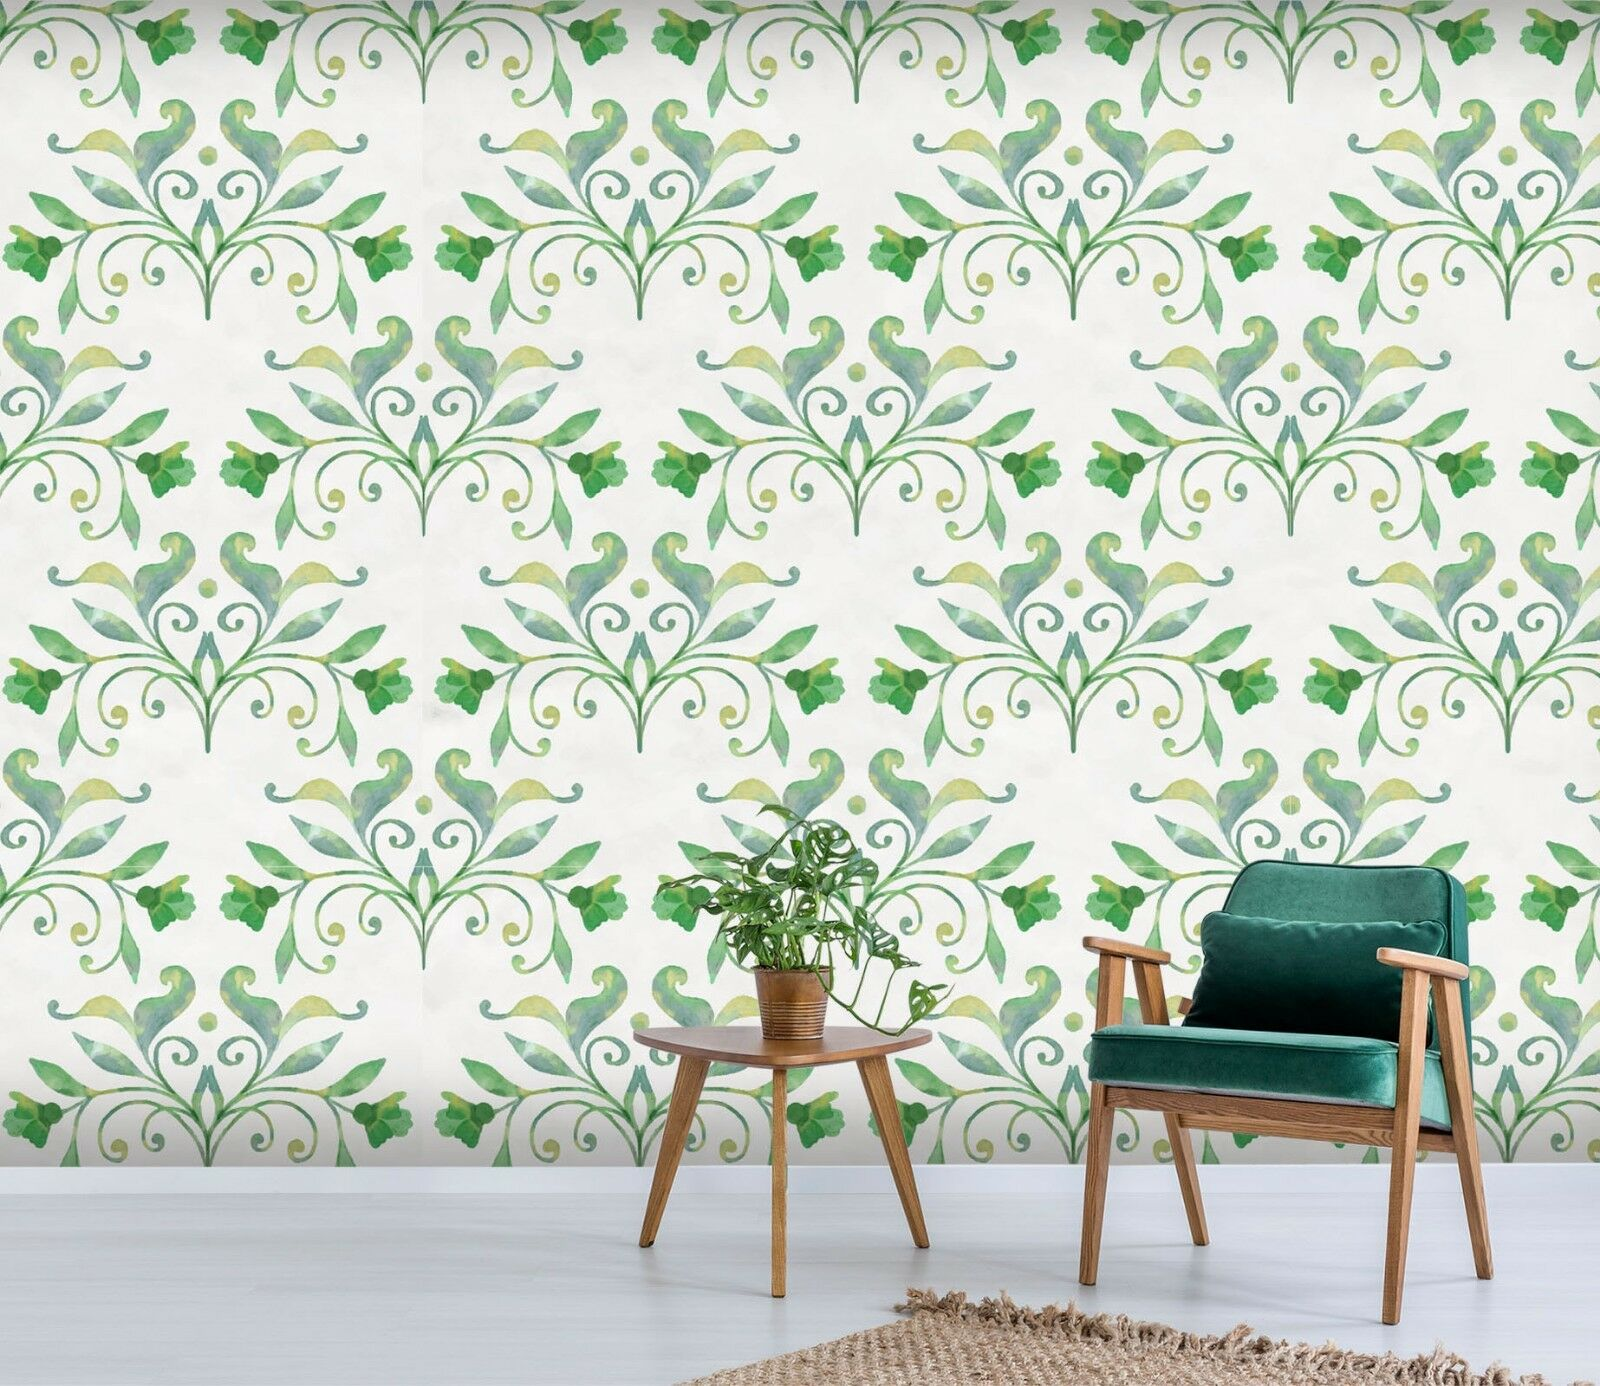 3D Grün Vine 12 Wallpaper Mural Print Wall Indoor Wallpaper Murals UK Summer